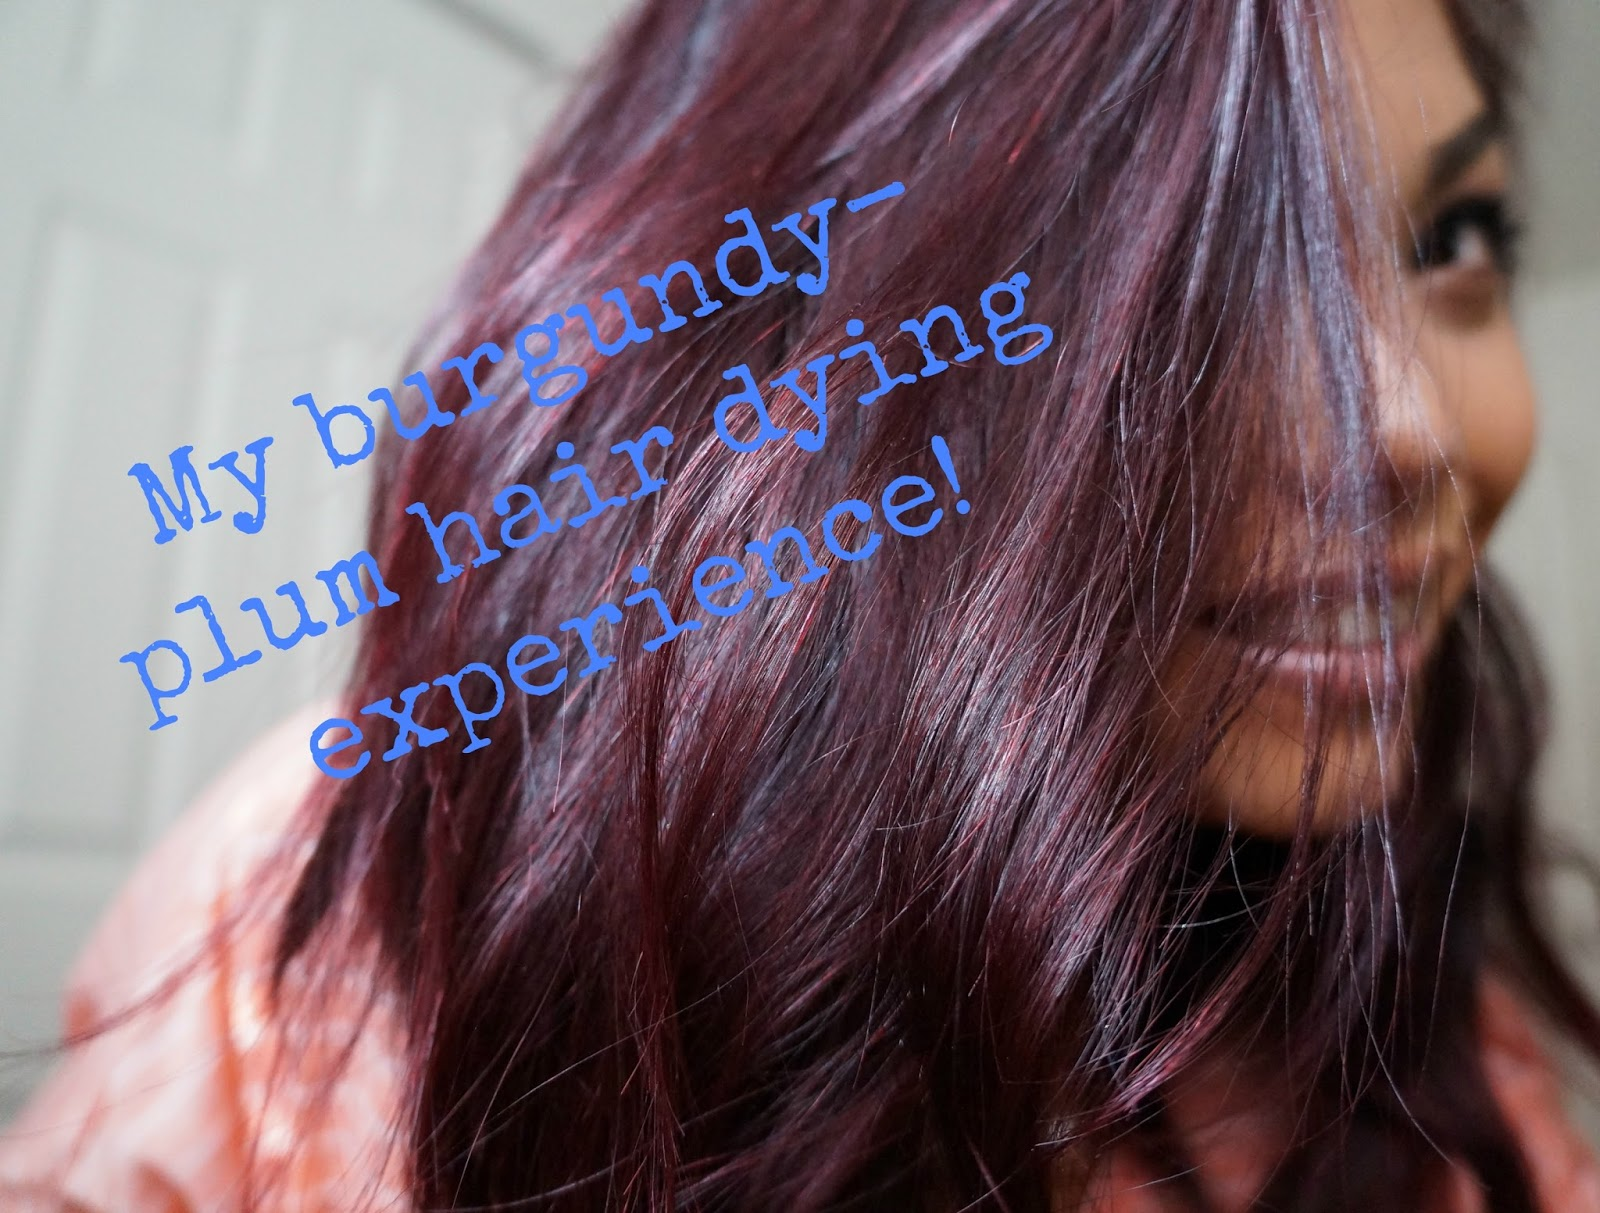 ... /Fashion/DIY && more!!: MY Burgundy - Plum hair dying experience